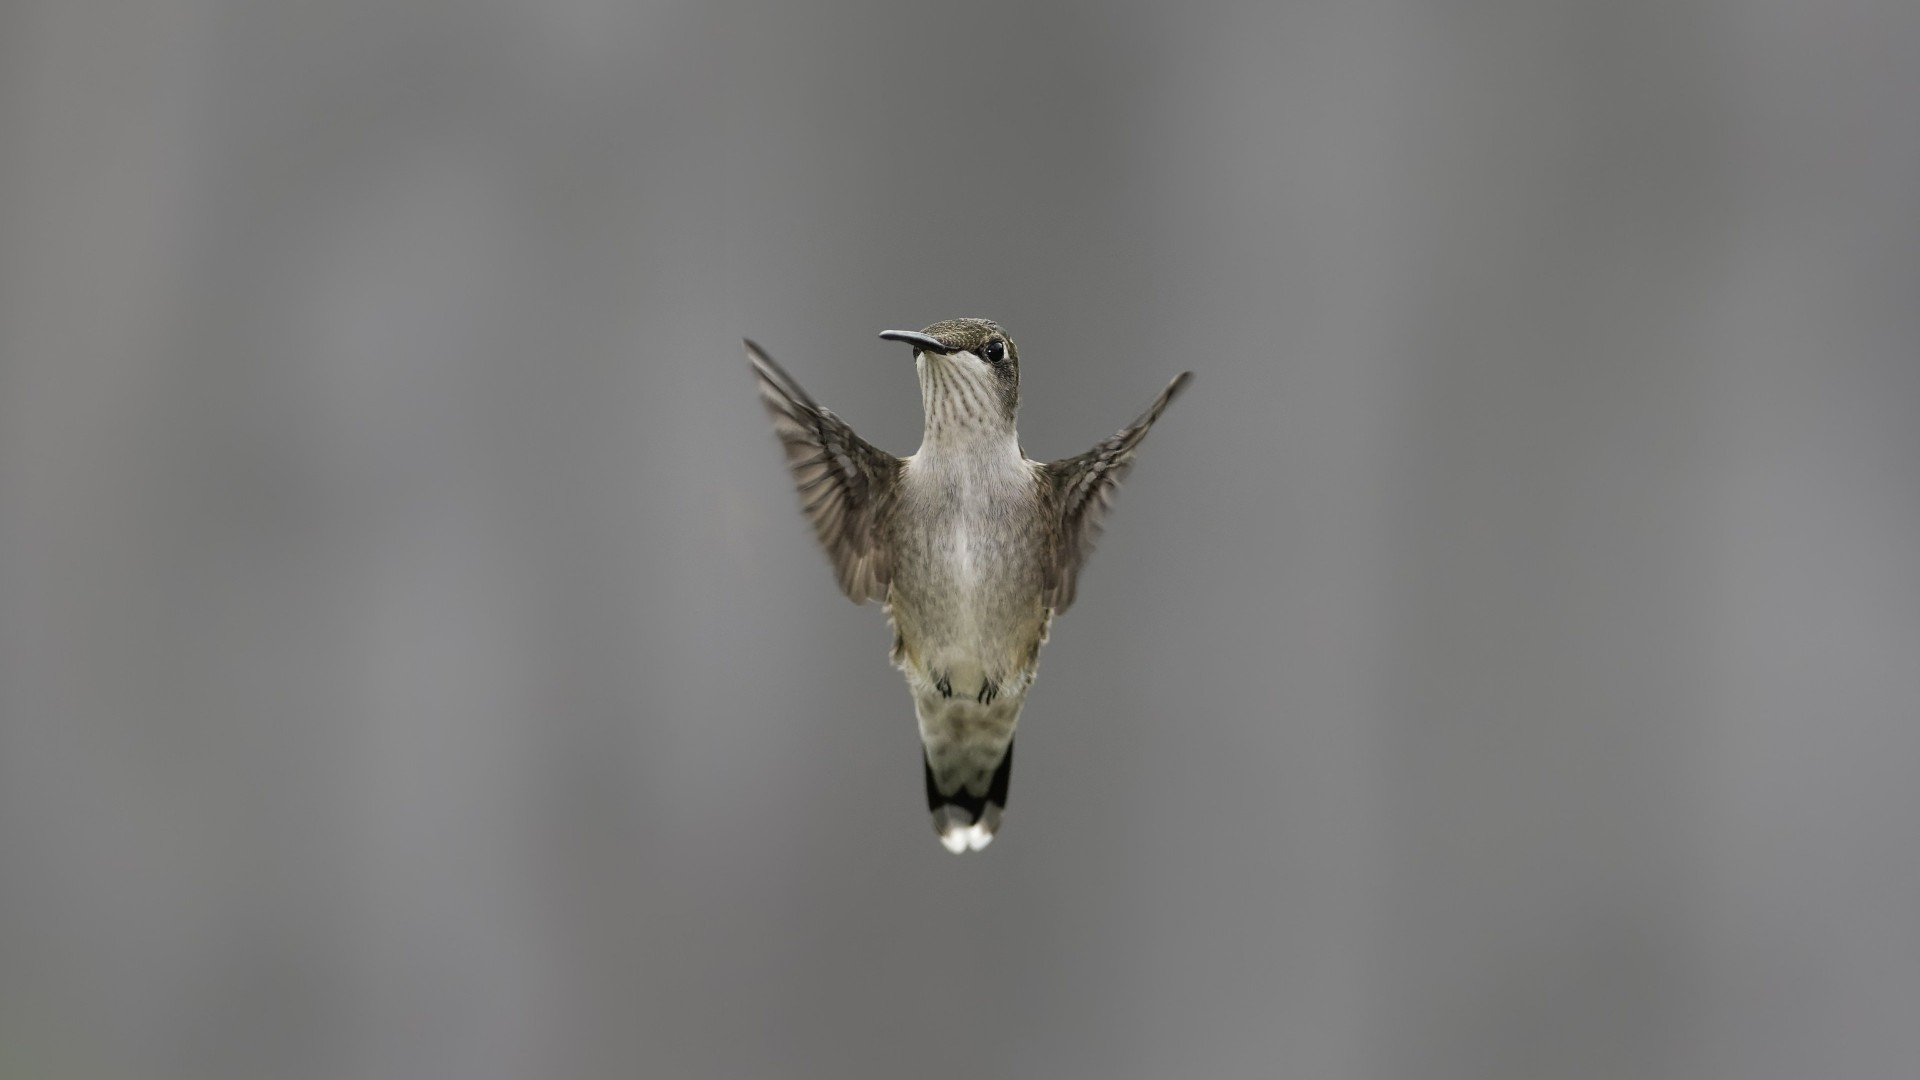 Flying Hummingbird Wallpaper for Desktop 1920x1080